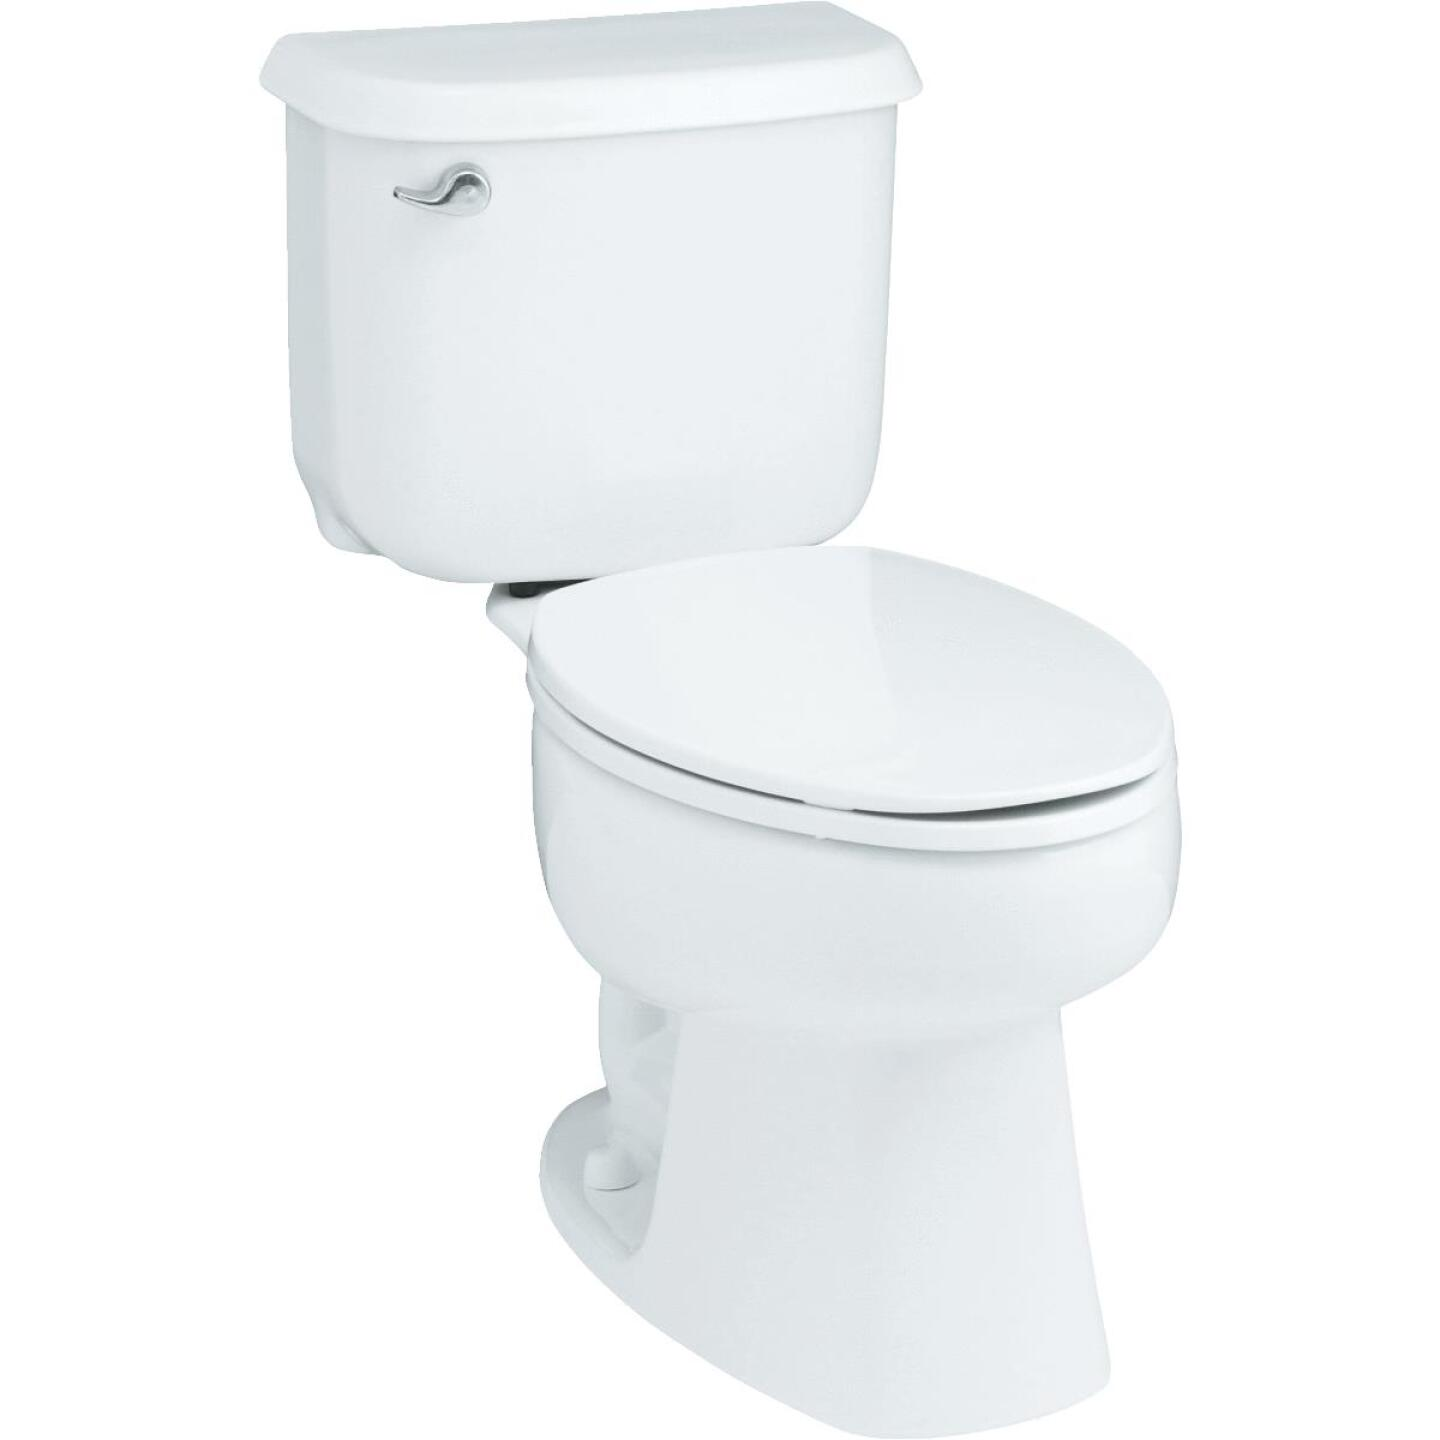 Sterling Windham White Round Bowl 1.28 GPF All-In-One Toilet Image 1